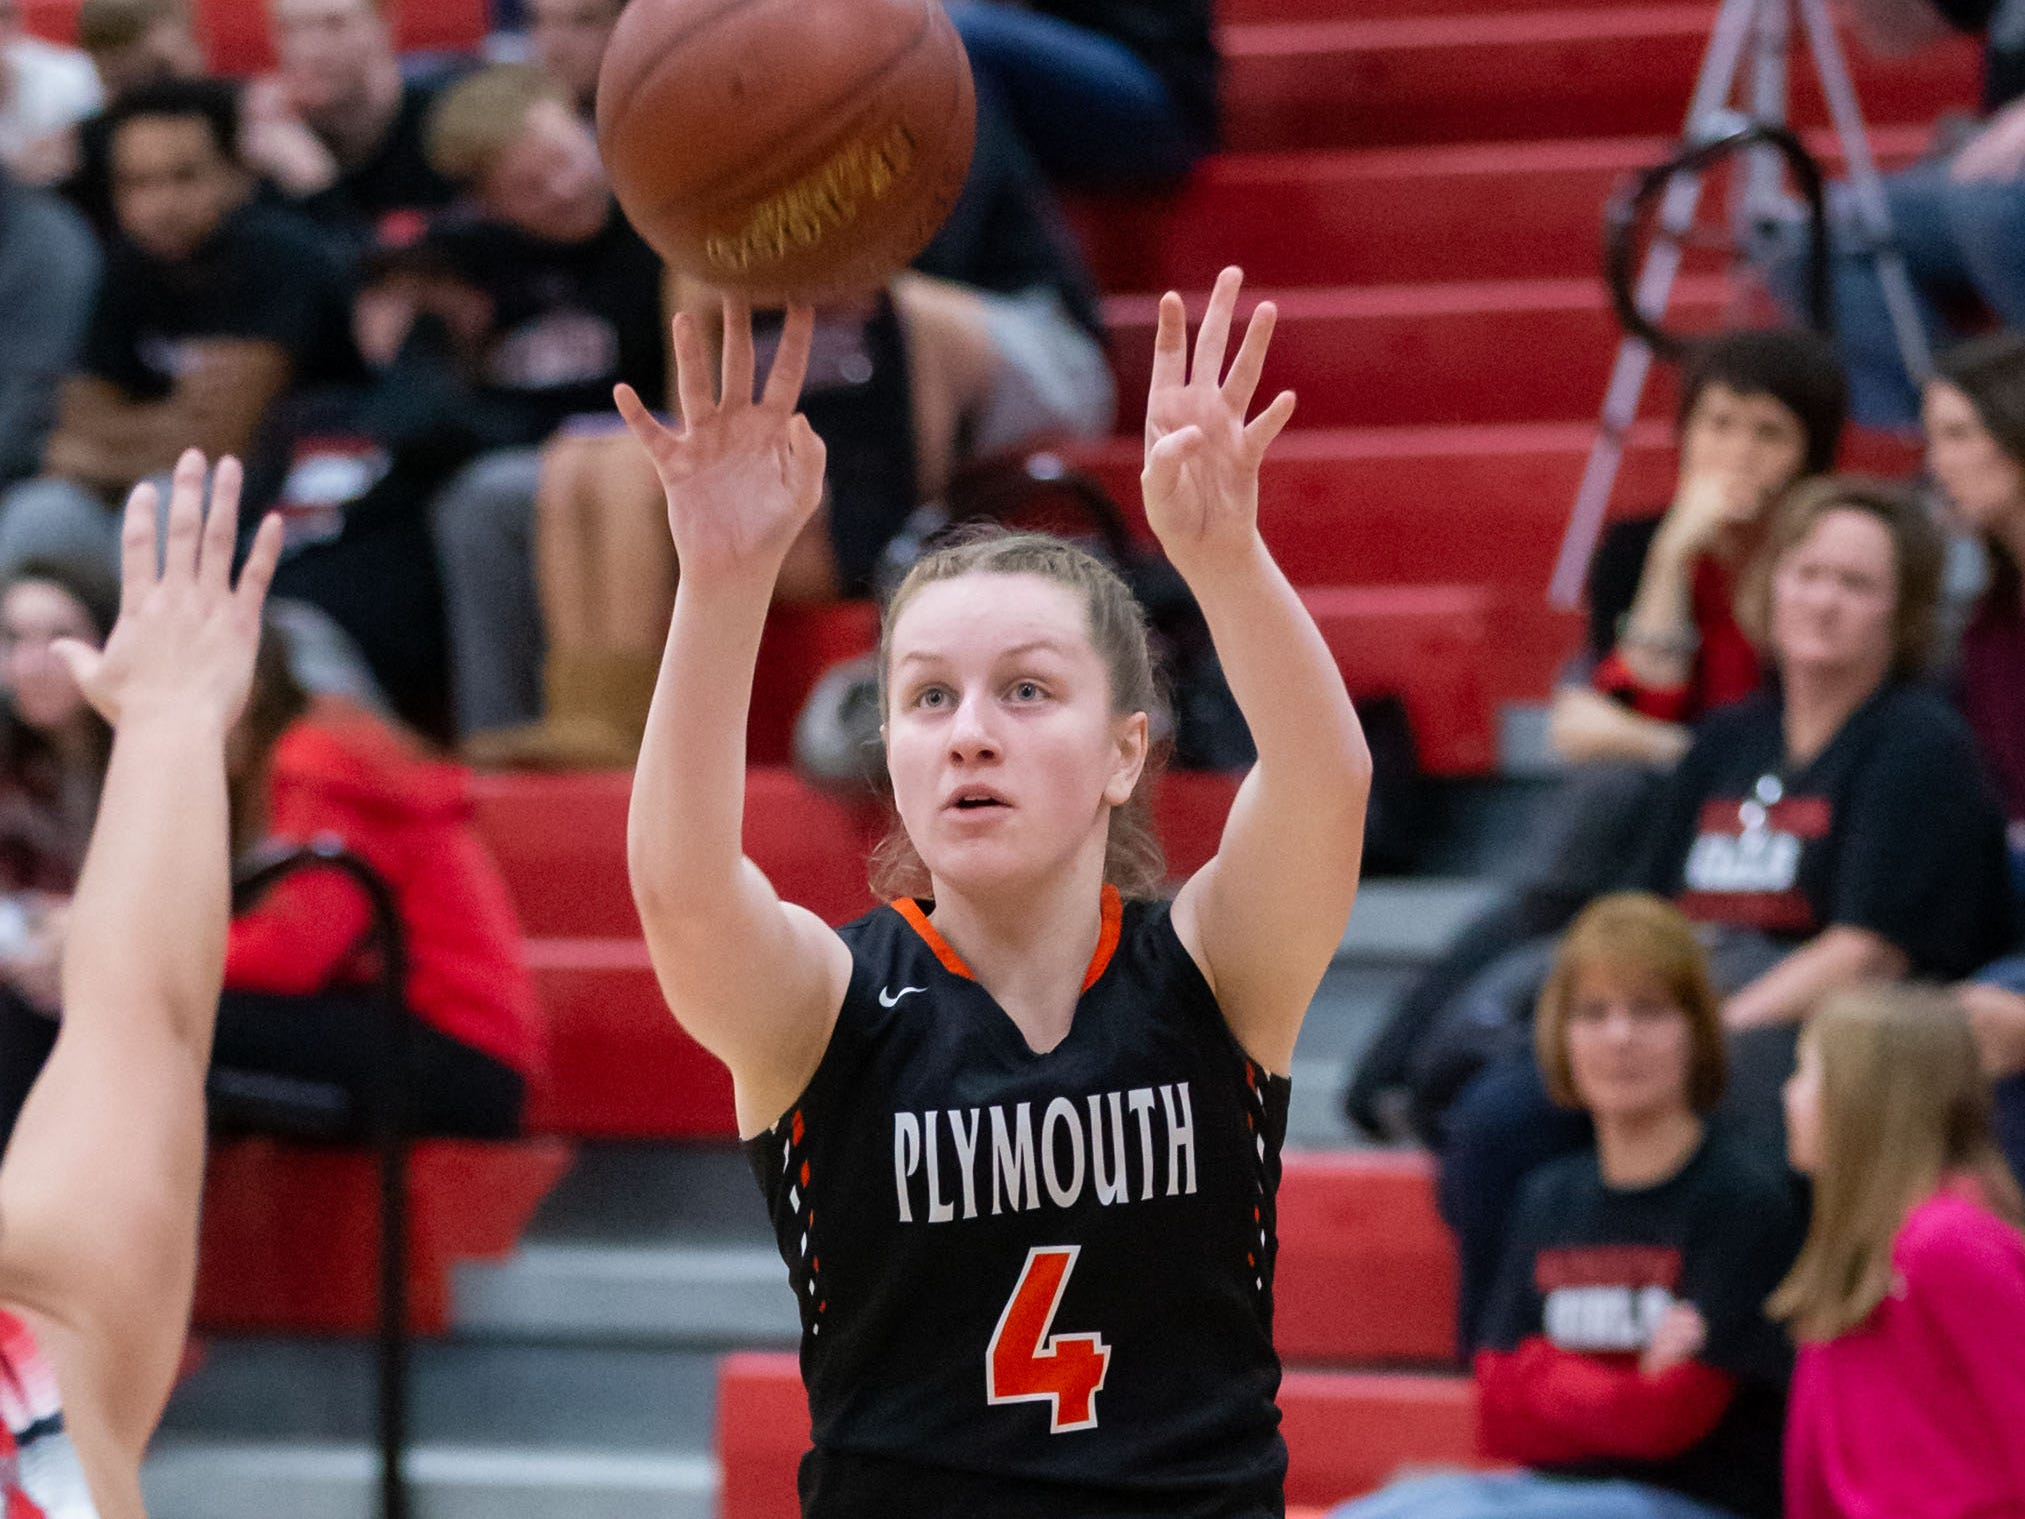 Plymouth junior Alesha Kaat-Fohr (4) elevates for three during the game at Hamilton on Tuesday, Dec. 4, 2018.